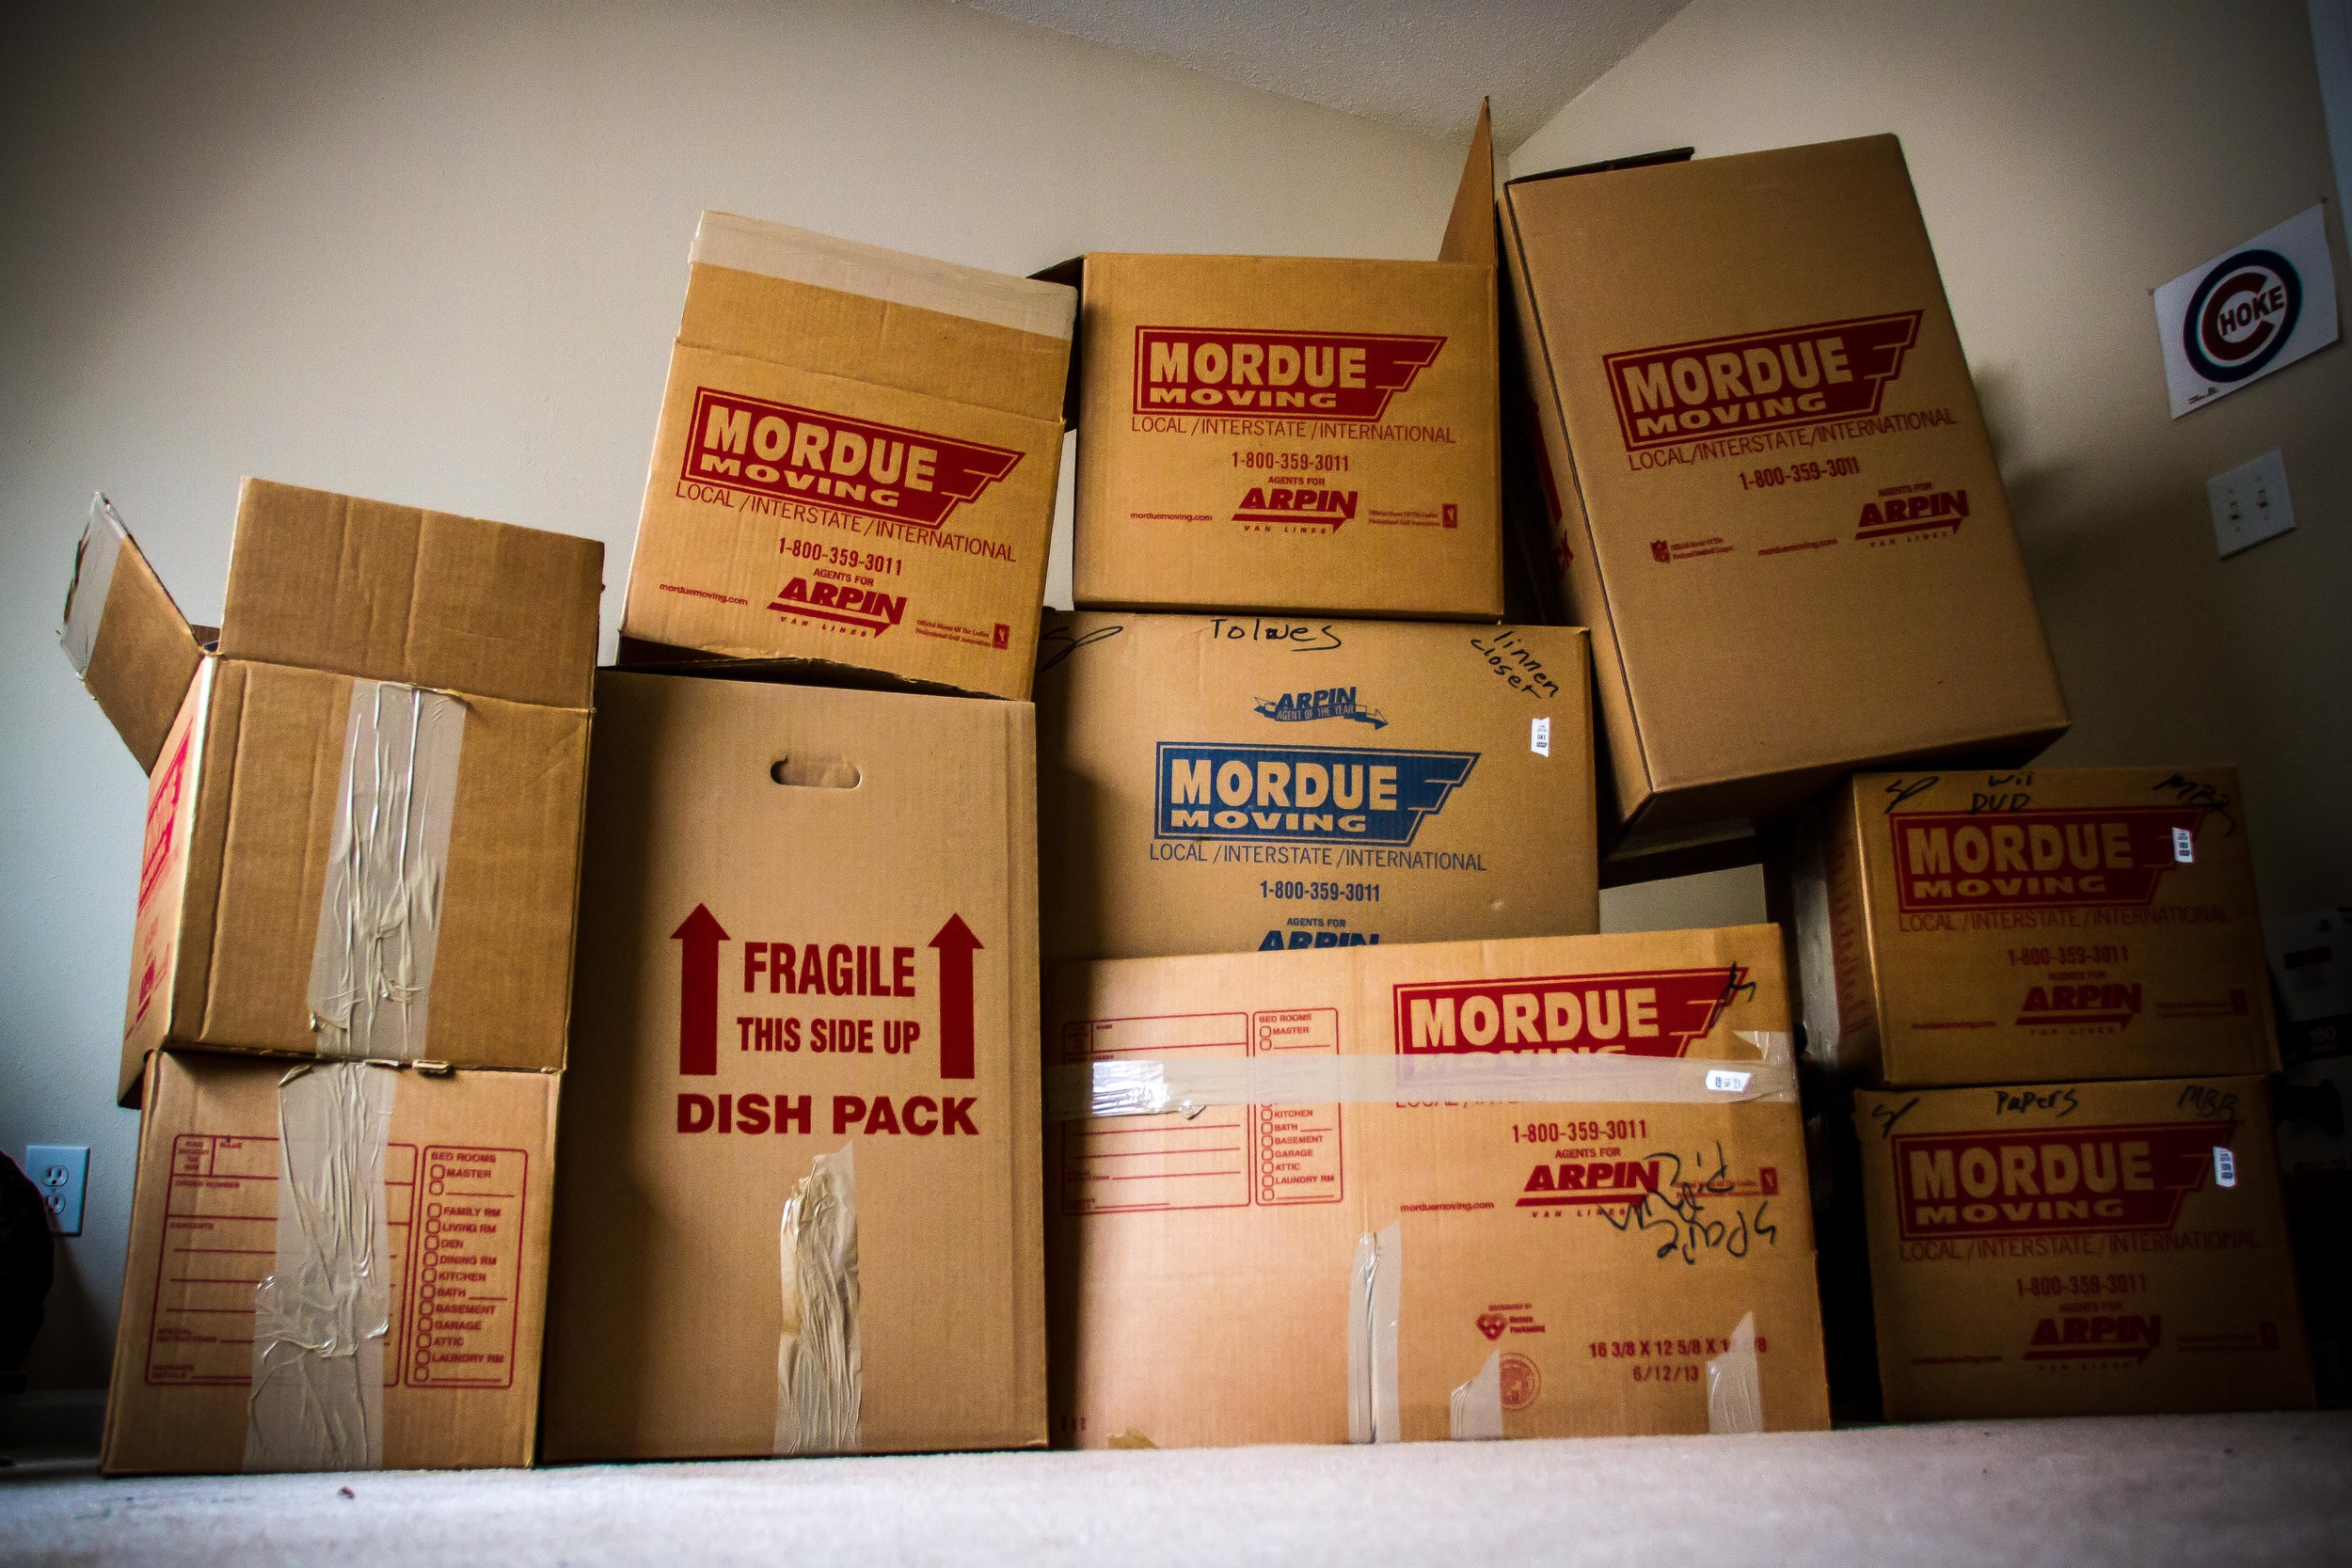 Here is a shot of some of the boxes I have left from my move. Mordue was the company that moved my stuff. I played around with a few arrangements and like this shot the most. This was a basic shot with my Canon 7D with a Sigma 18-200mm at F4.0, 1/60 sec, 1000 ISO using available light coming from the window. Also with a little post processing with Adobe Lightroom